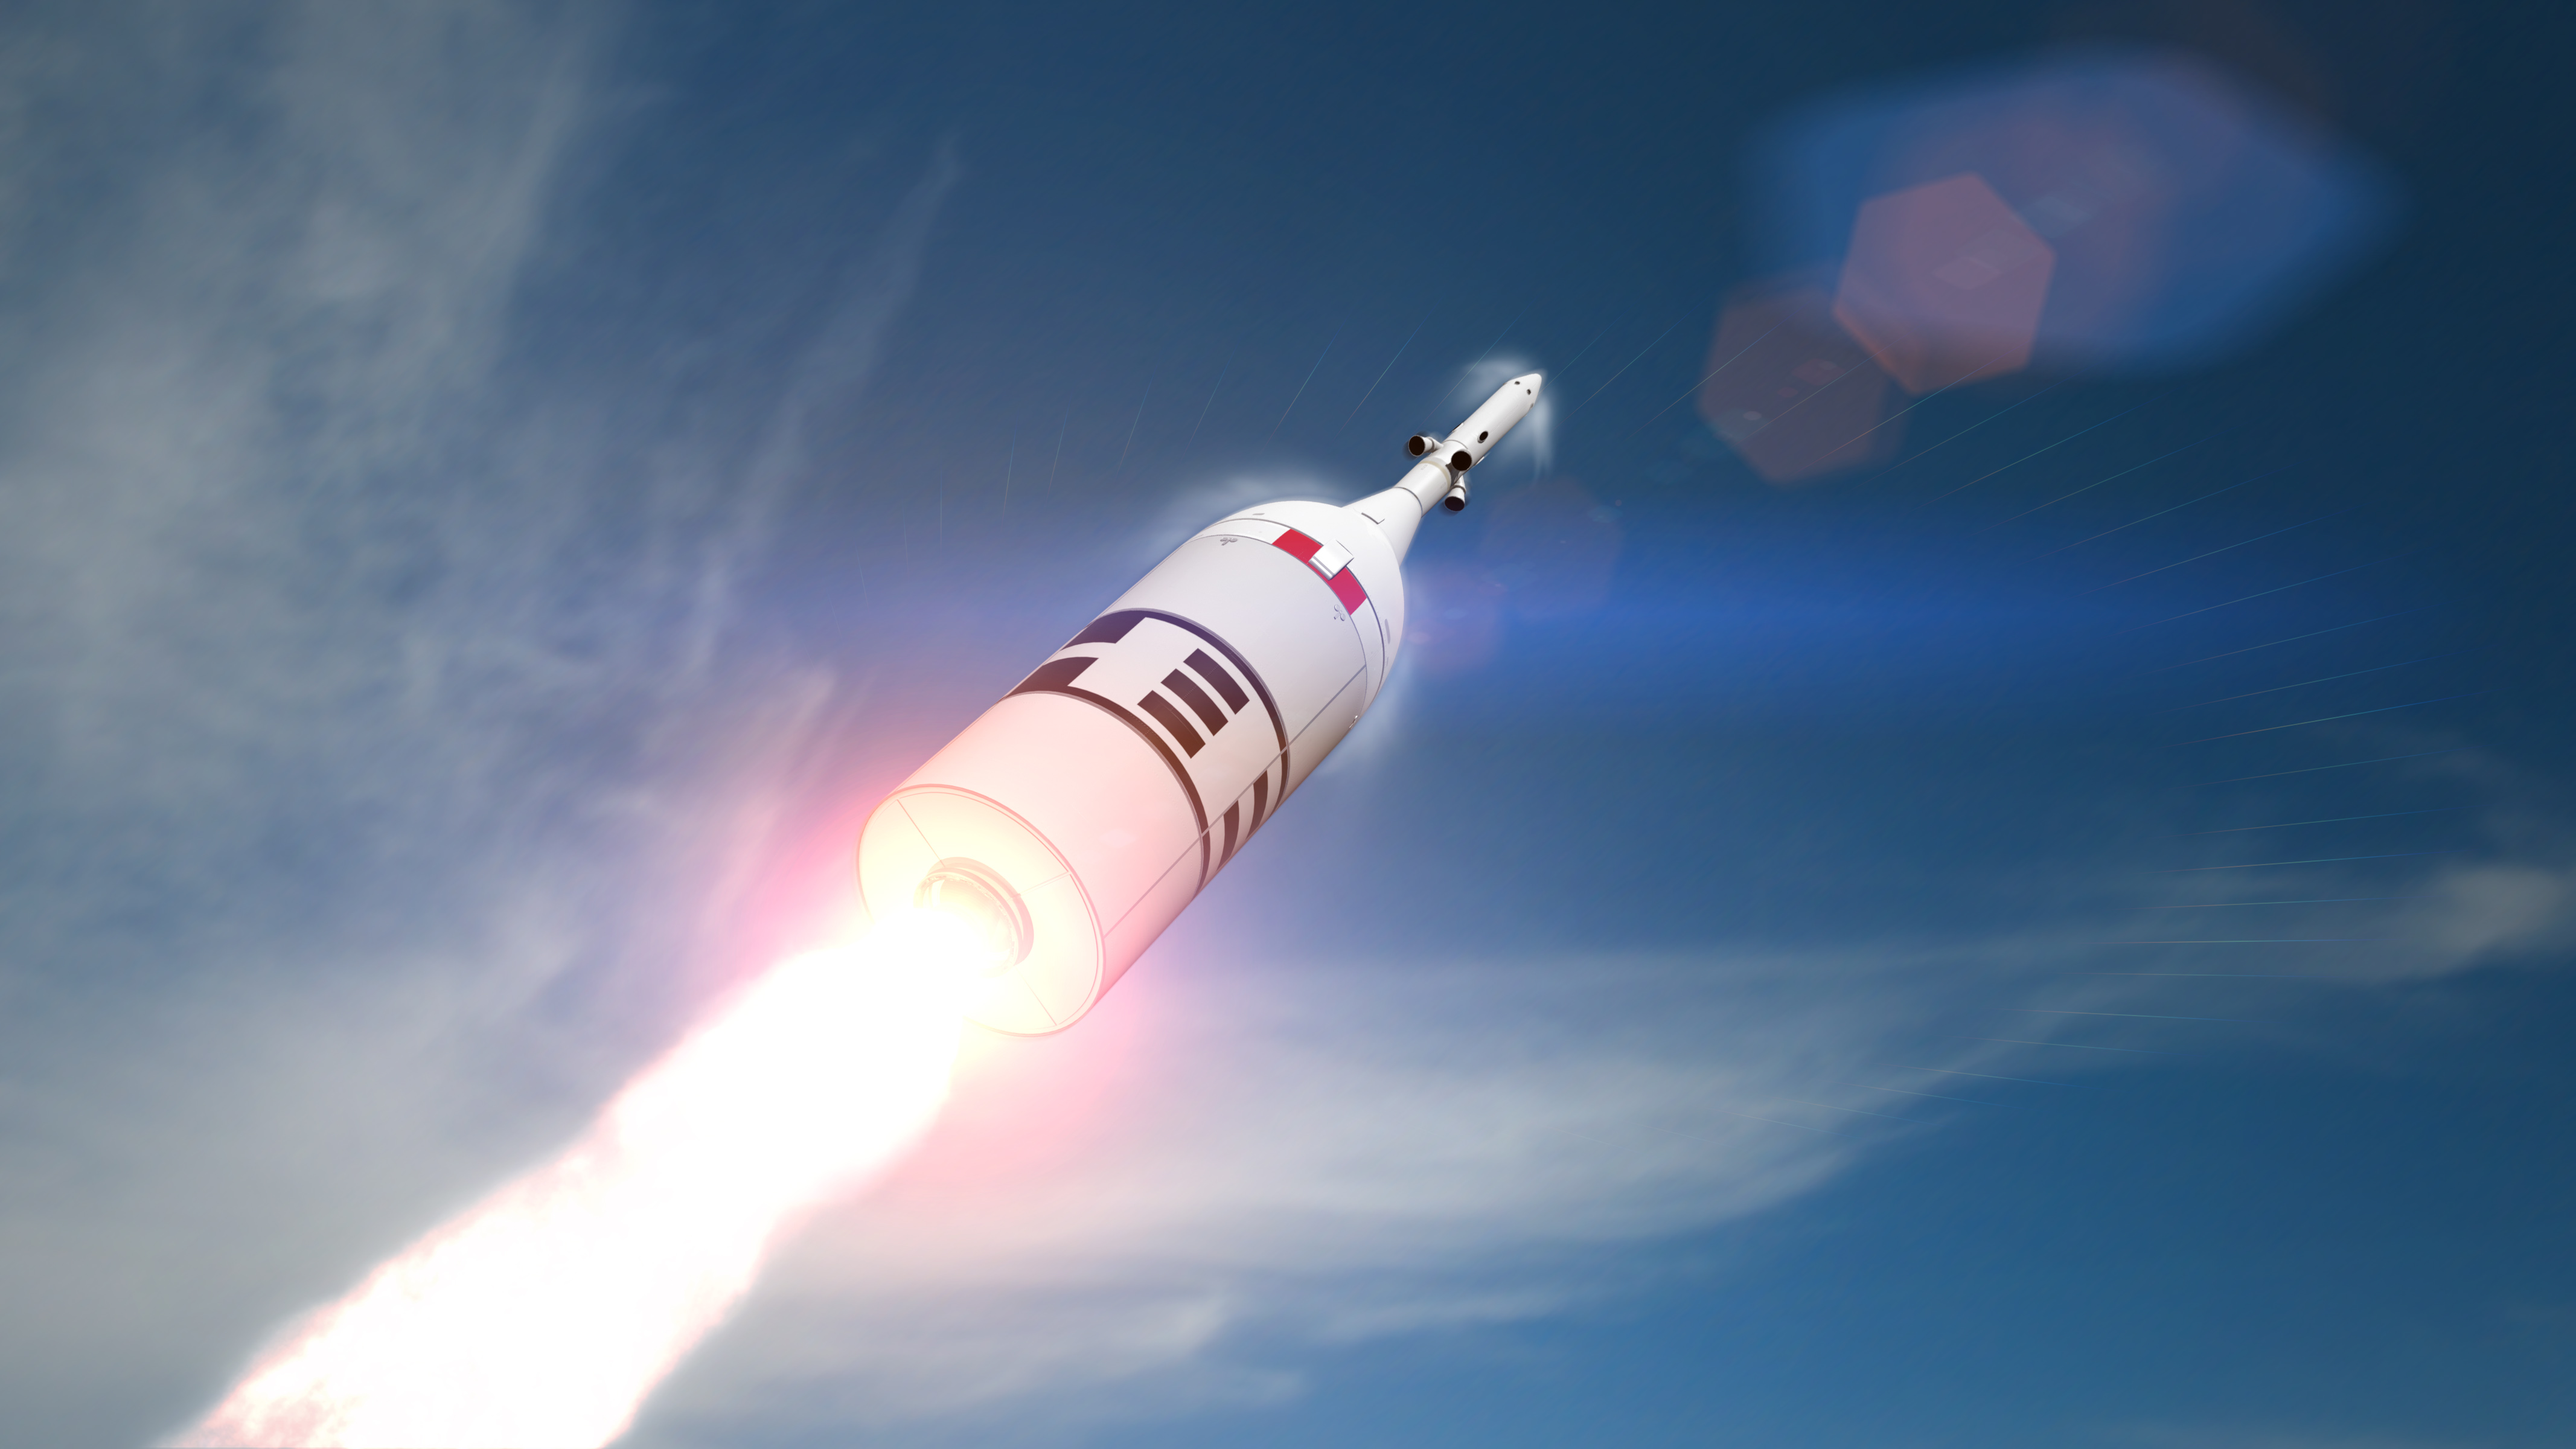 Nasa S Orion Spacecraft Getting Closer To Finally Flying Again Ars